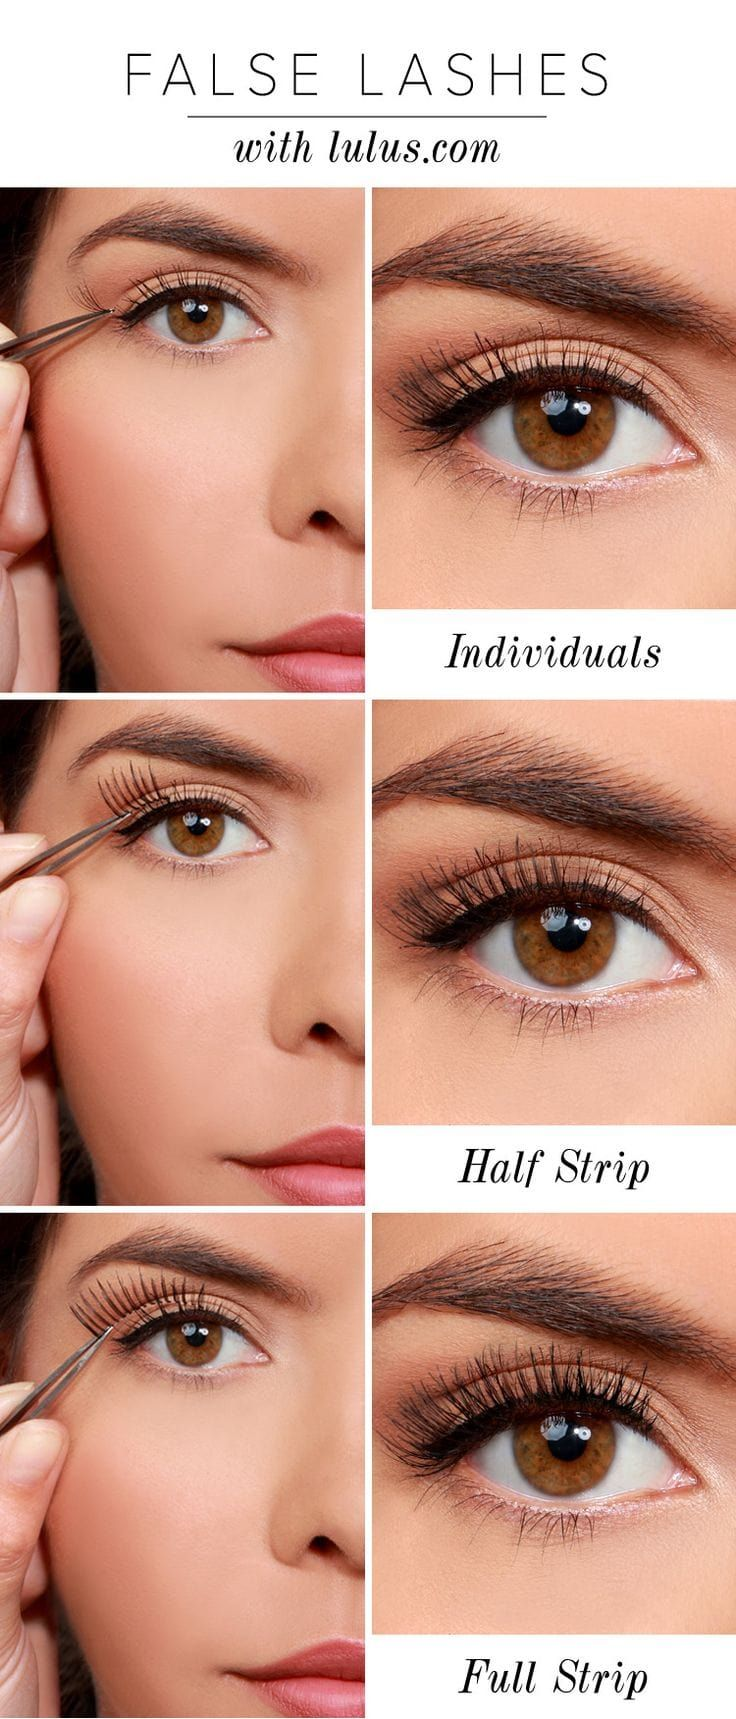 How to apply false eyelashes for the first time with